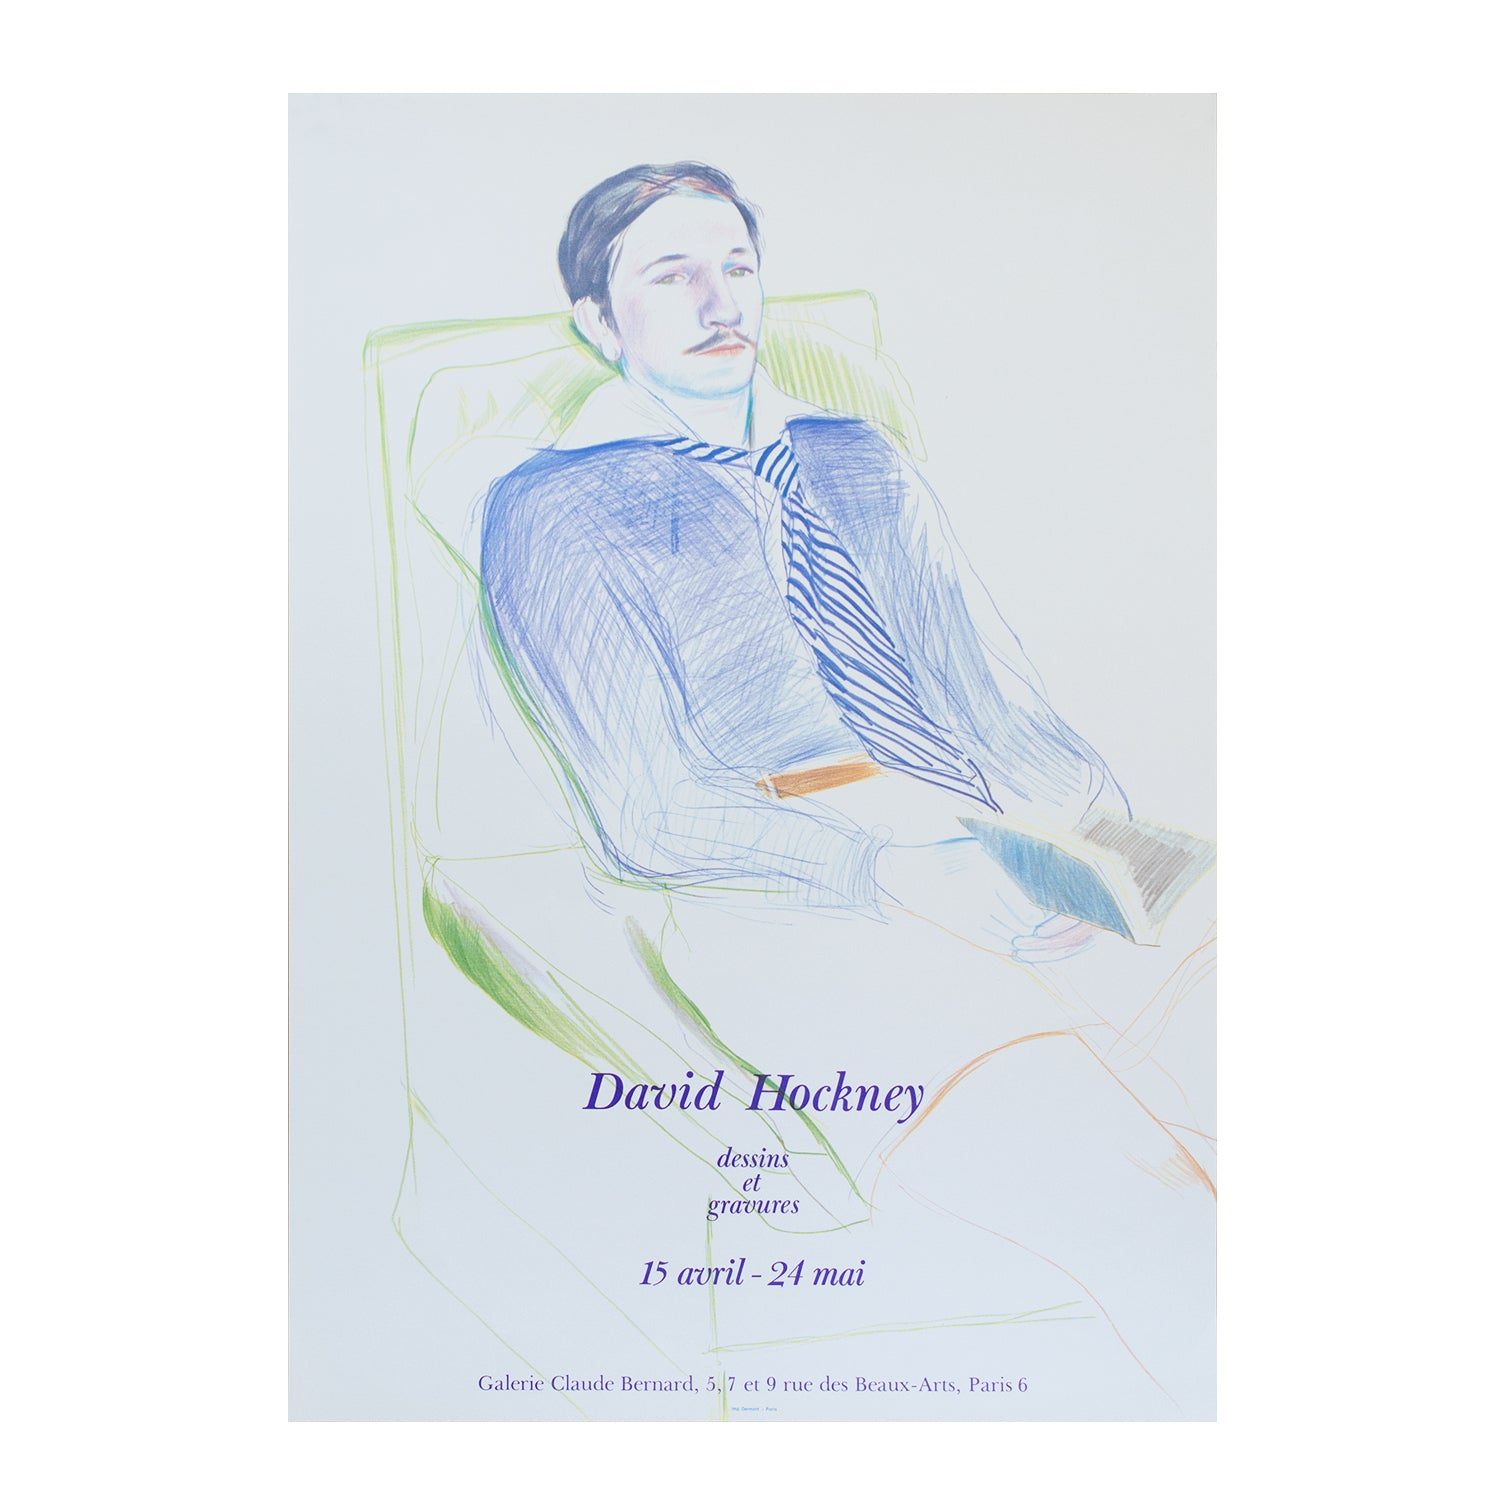 David Hockney. Dessins et gravures